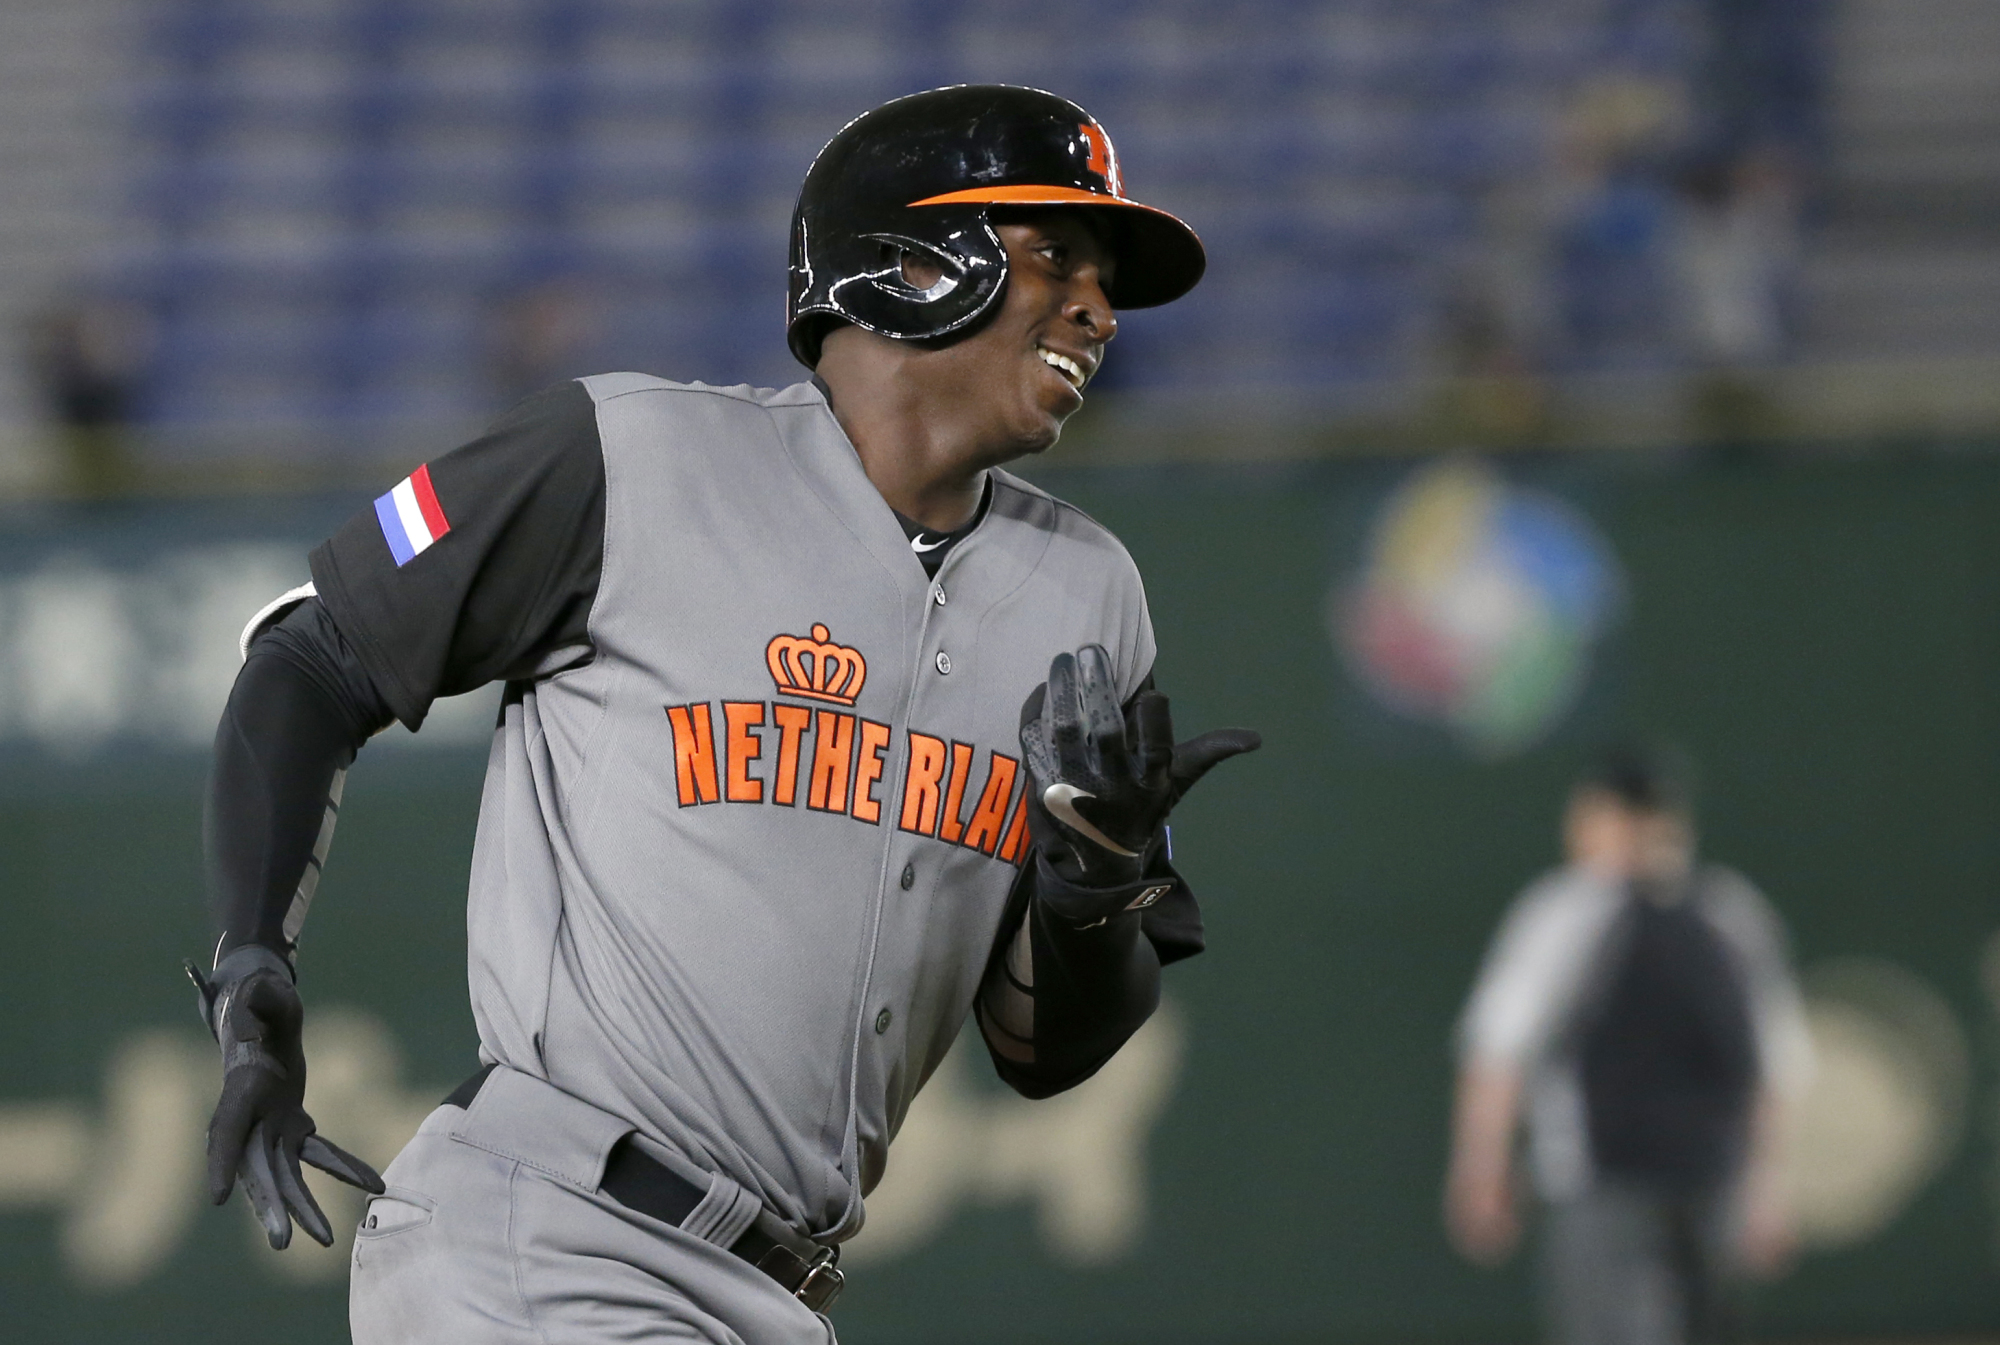 Didi Gregorius is playing as a designated hitter on the Netherlands' 2017 World Baseball Classic team despite playing as the regular shortstop for the New York Yankees. | AP